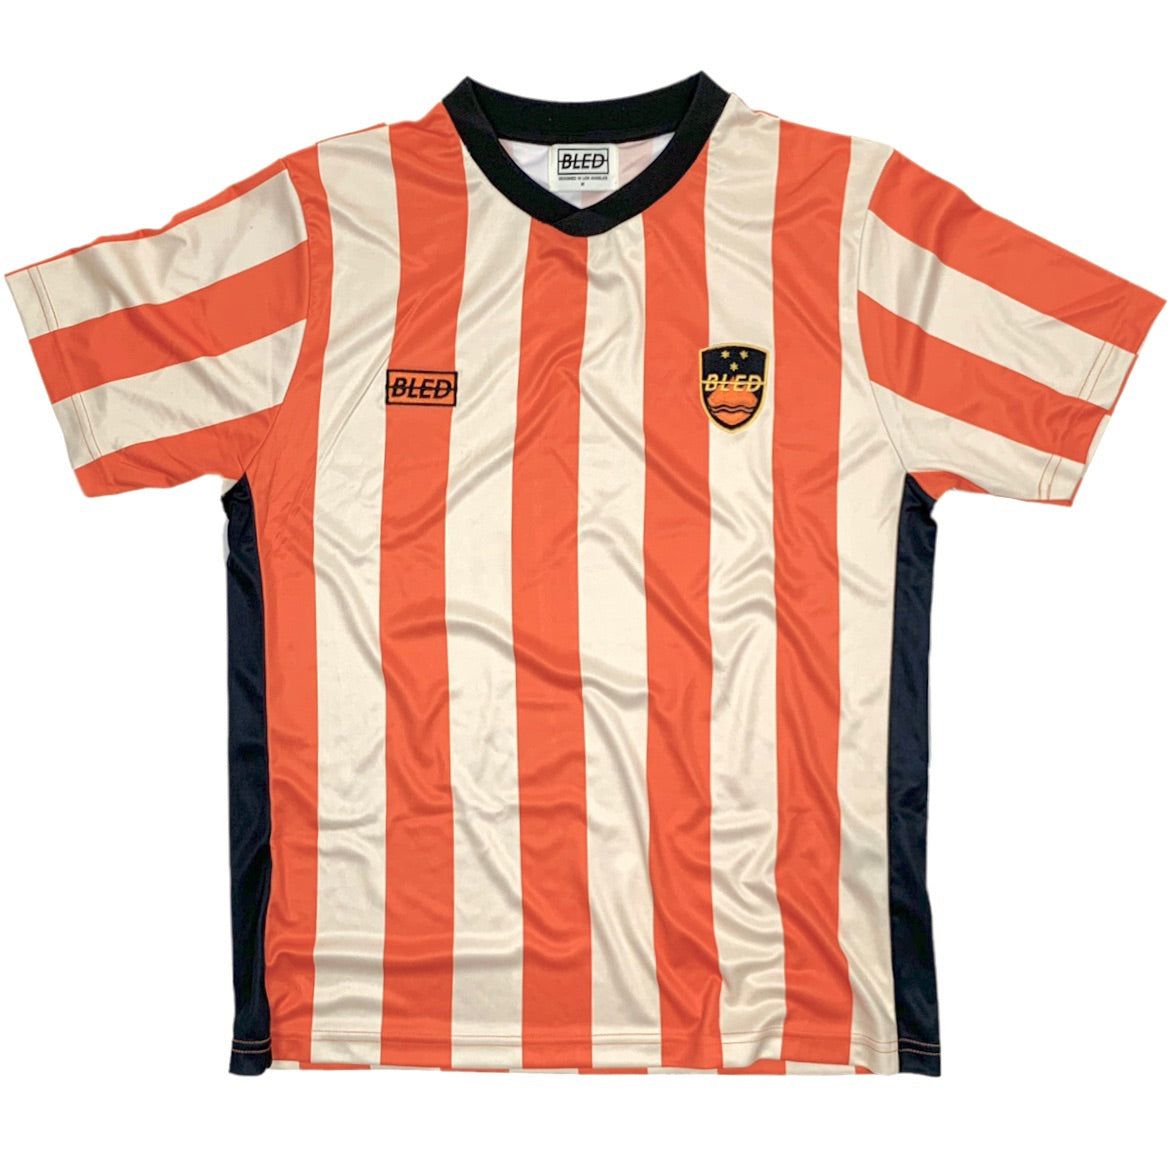 Footballer Training Jersey - Orange/Cream